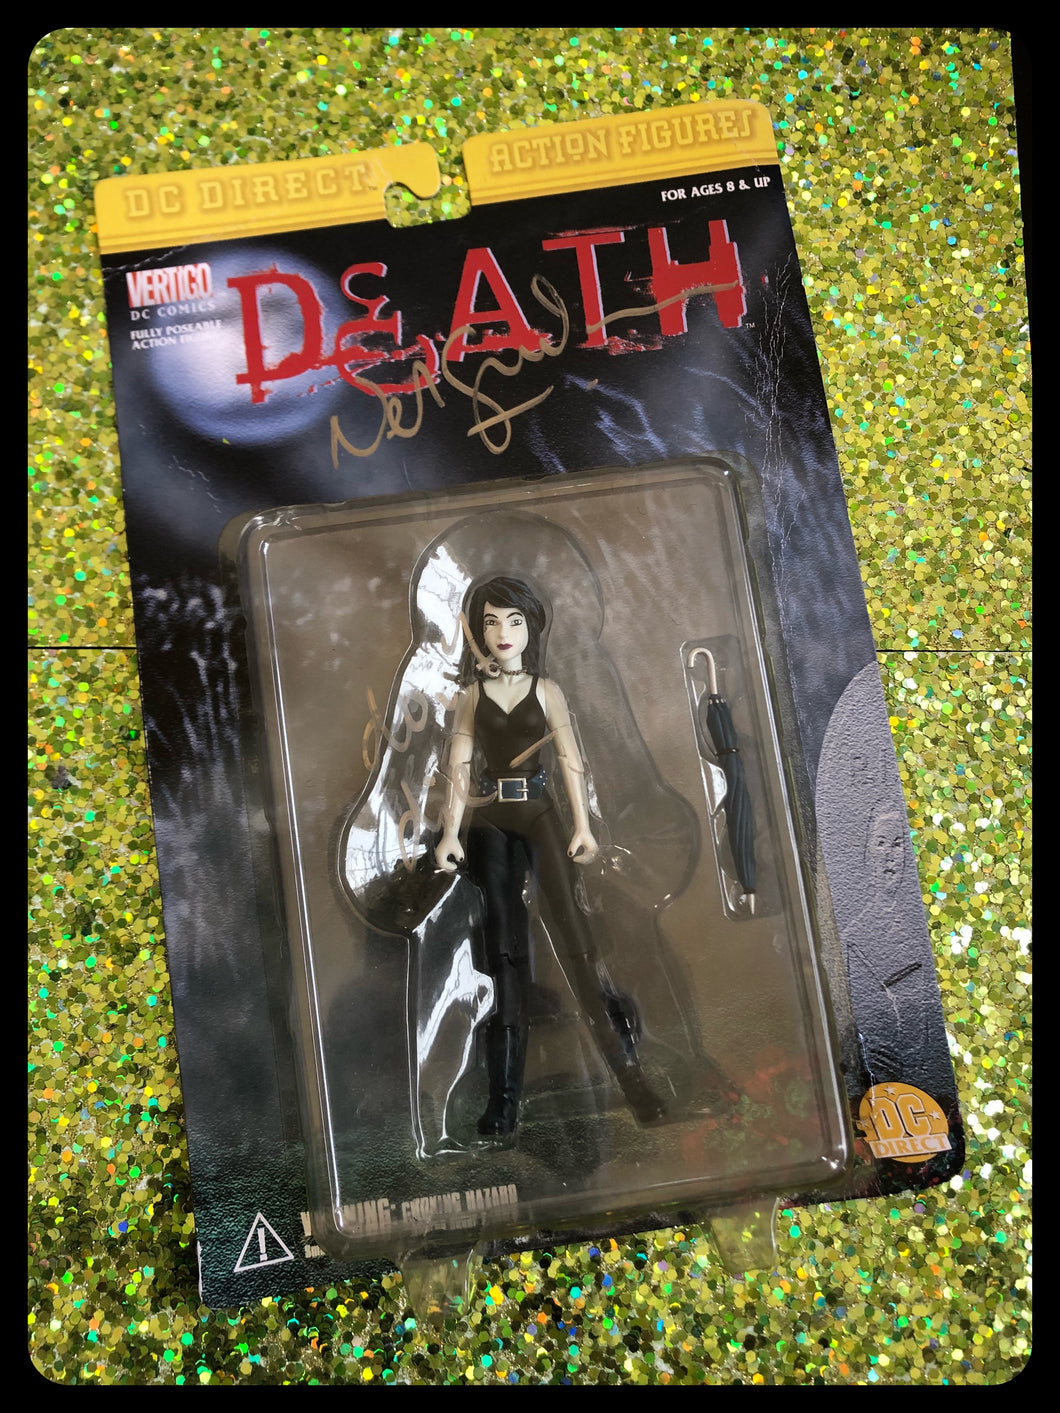 Signed by Neil DEATH action figure 1999